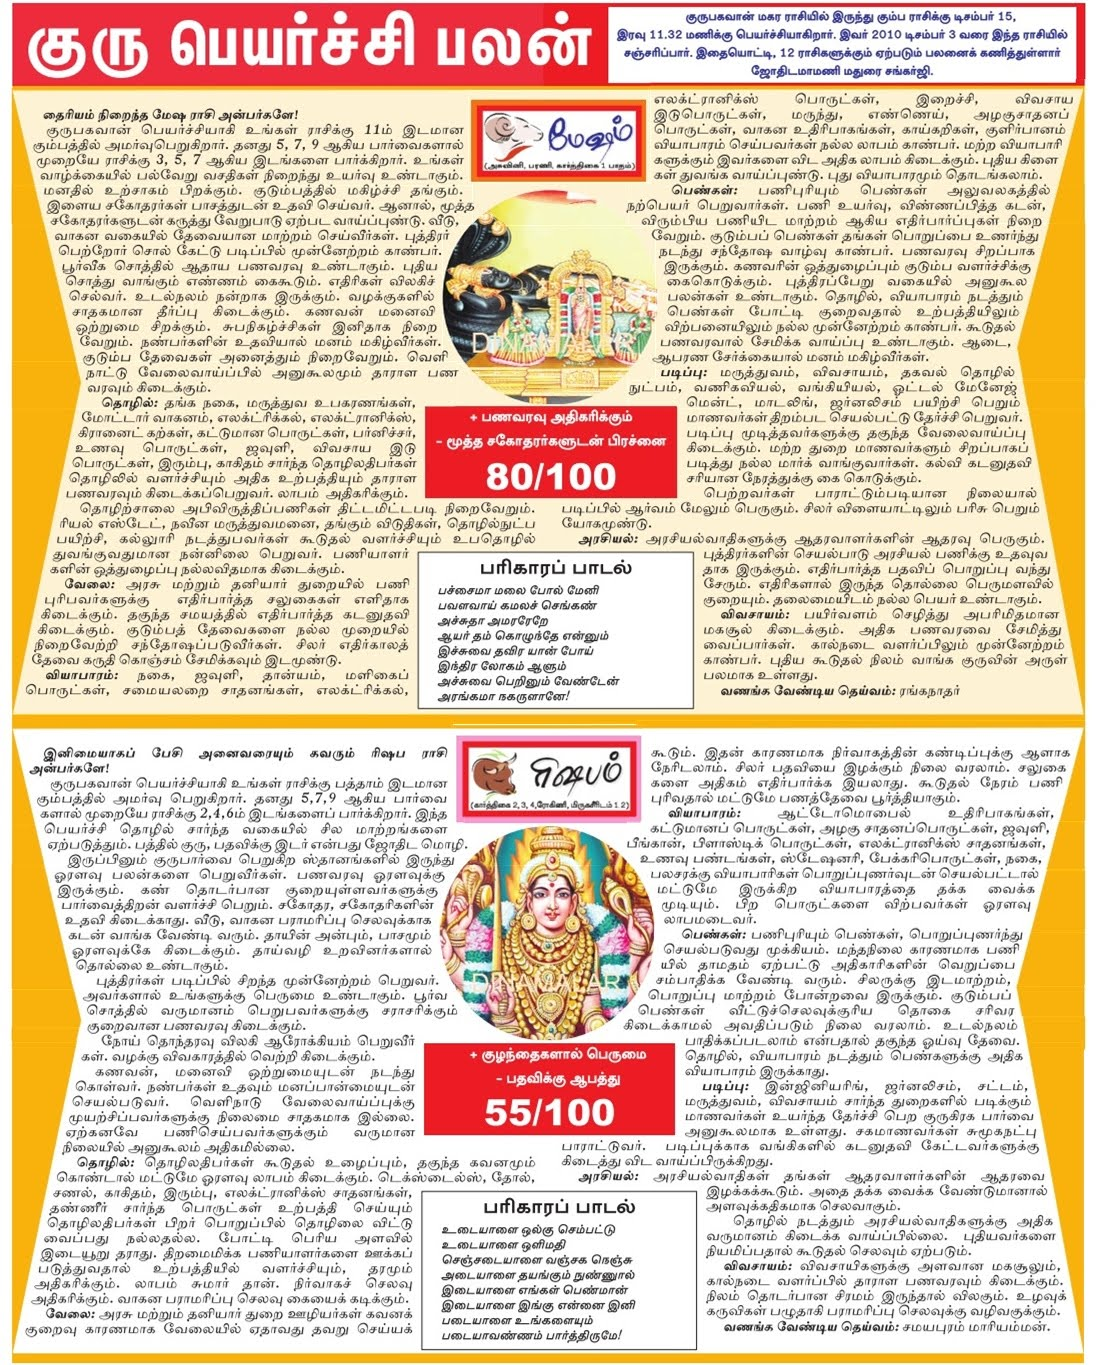 ... out your Raasi, Nakshatram, Pada (Quarter). BIRTH STAR TEMPLE LIST